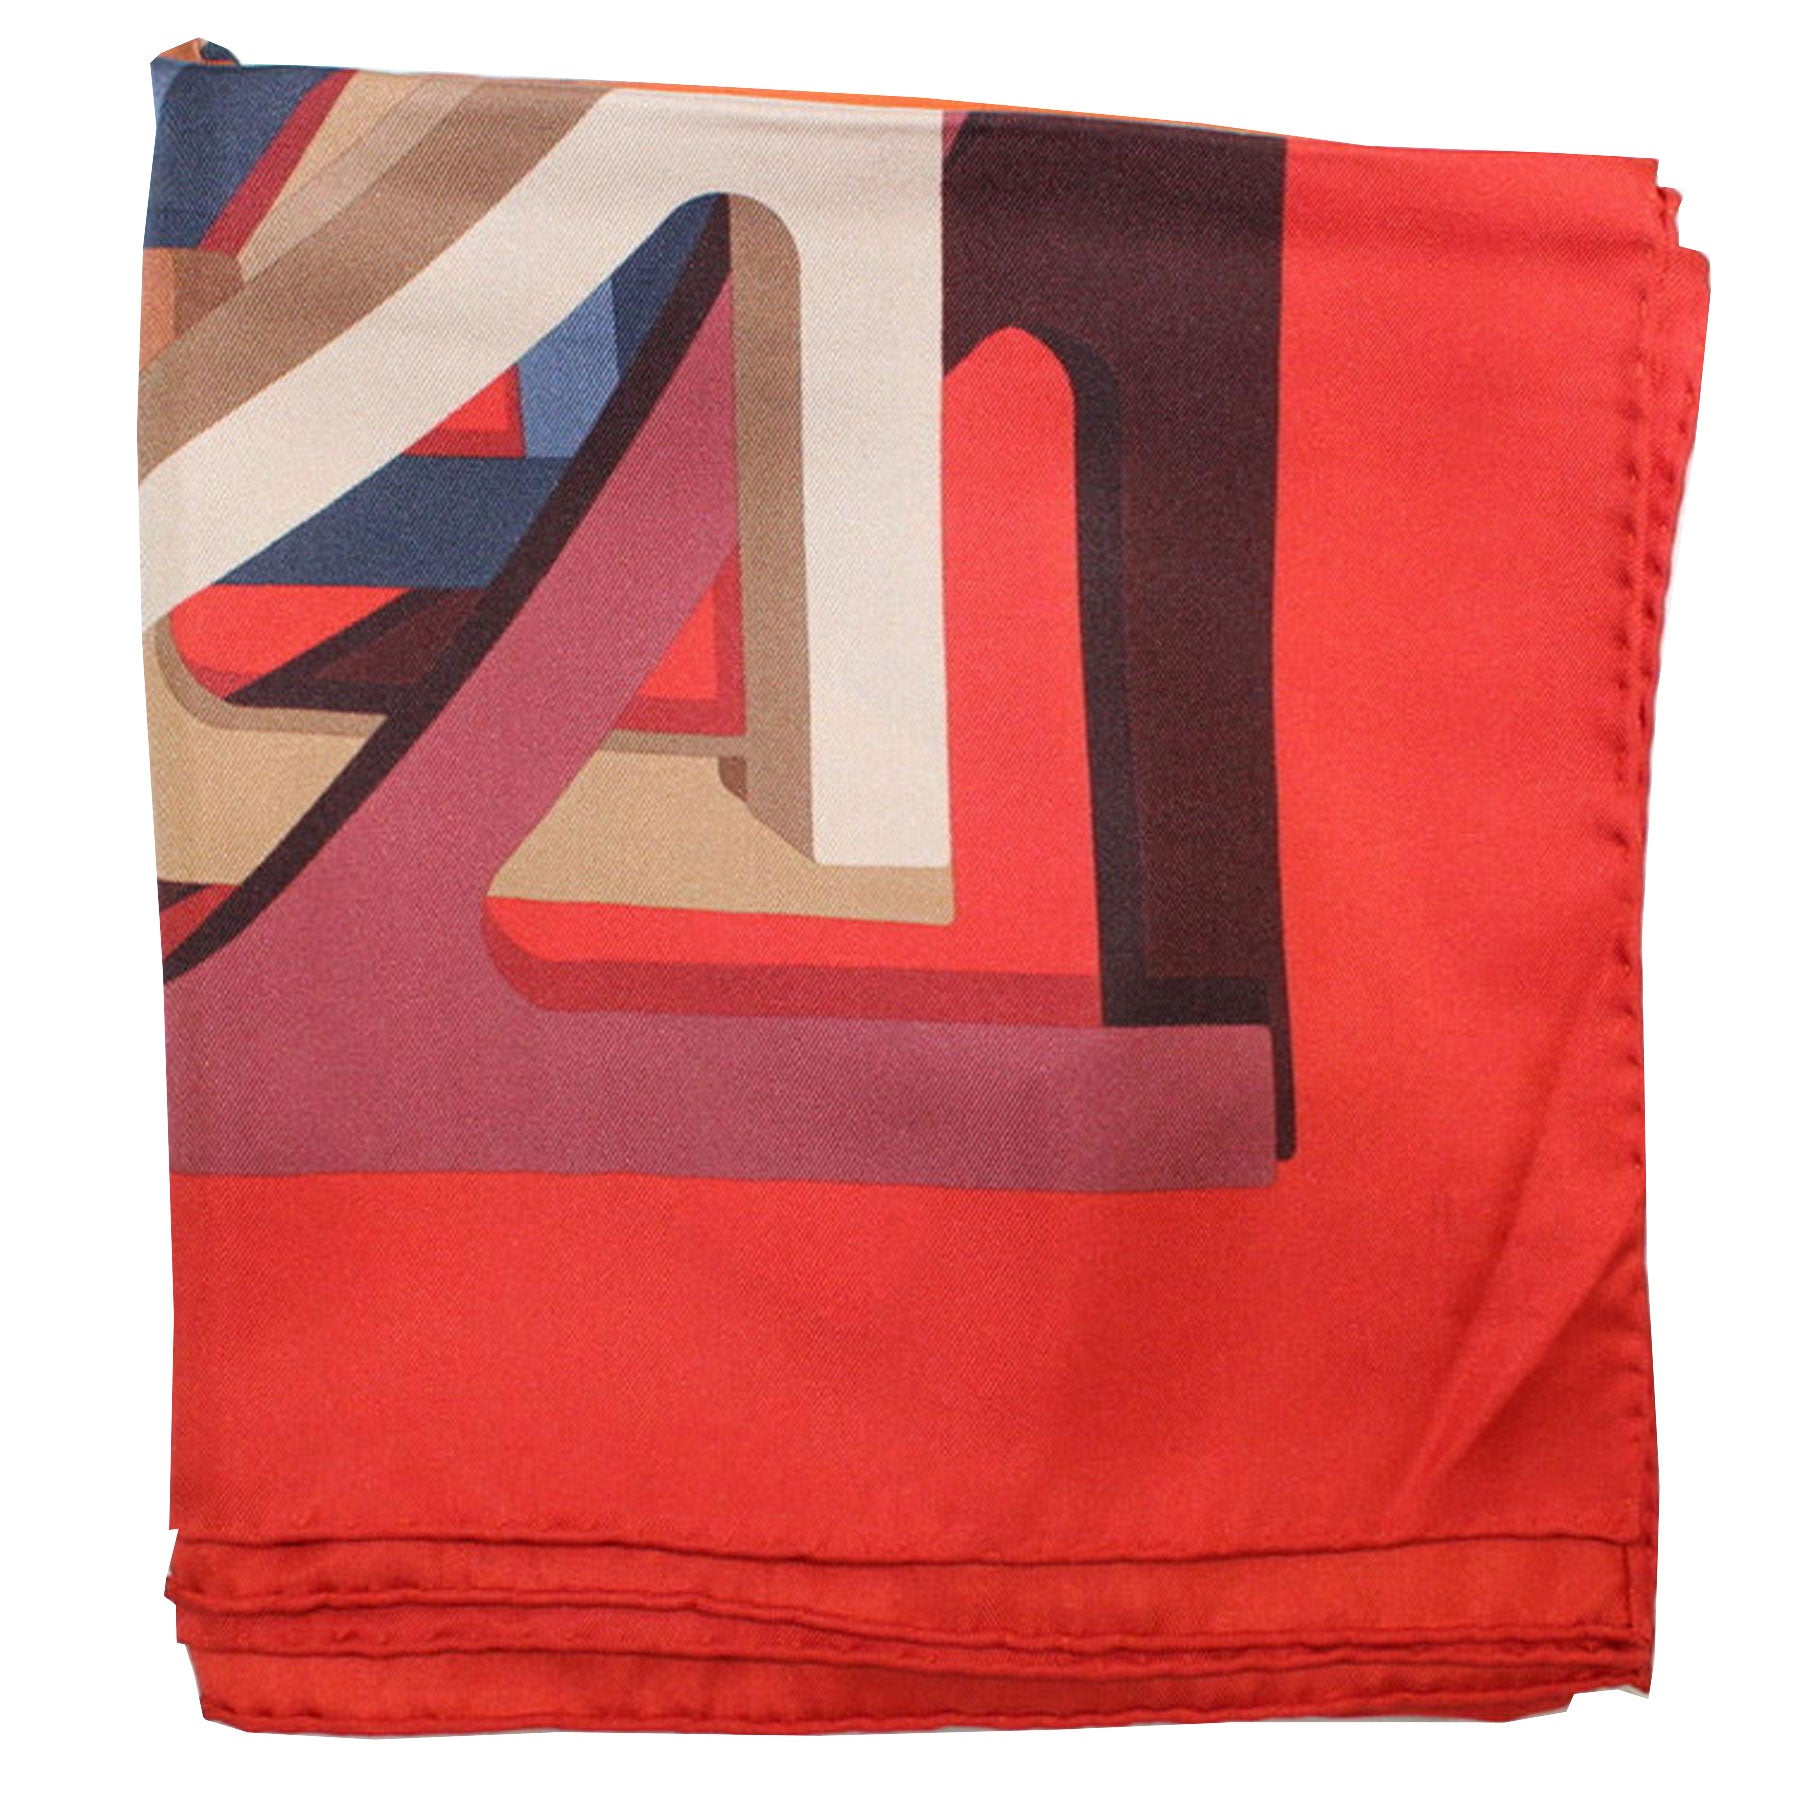 Salvatore Ferragamo Silk Scarf Red Navy Gancini - Large Square Foulard